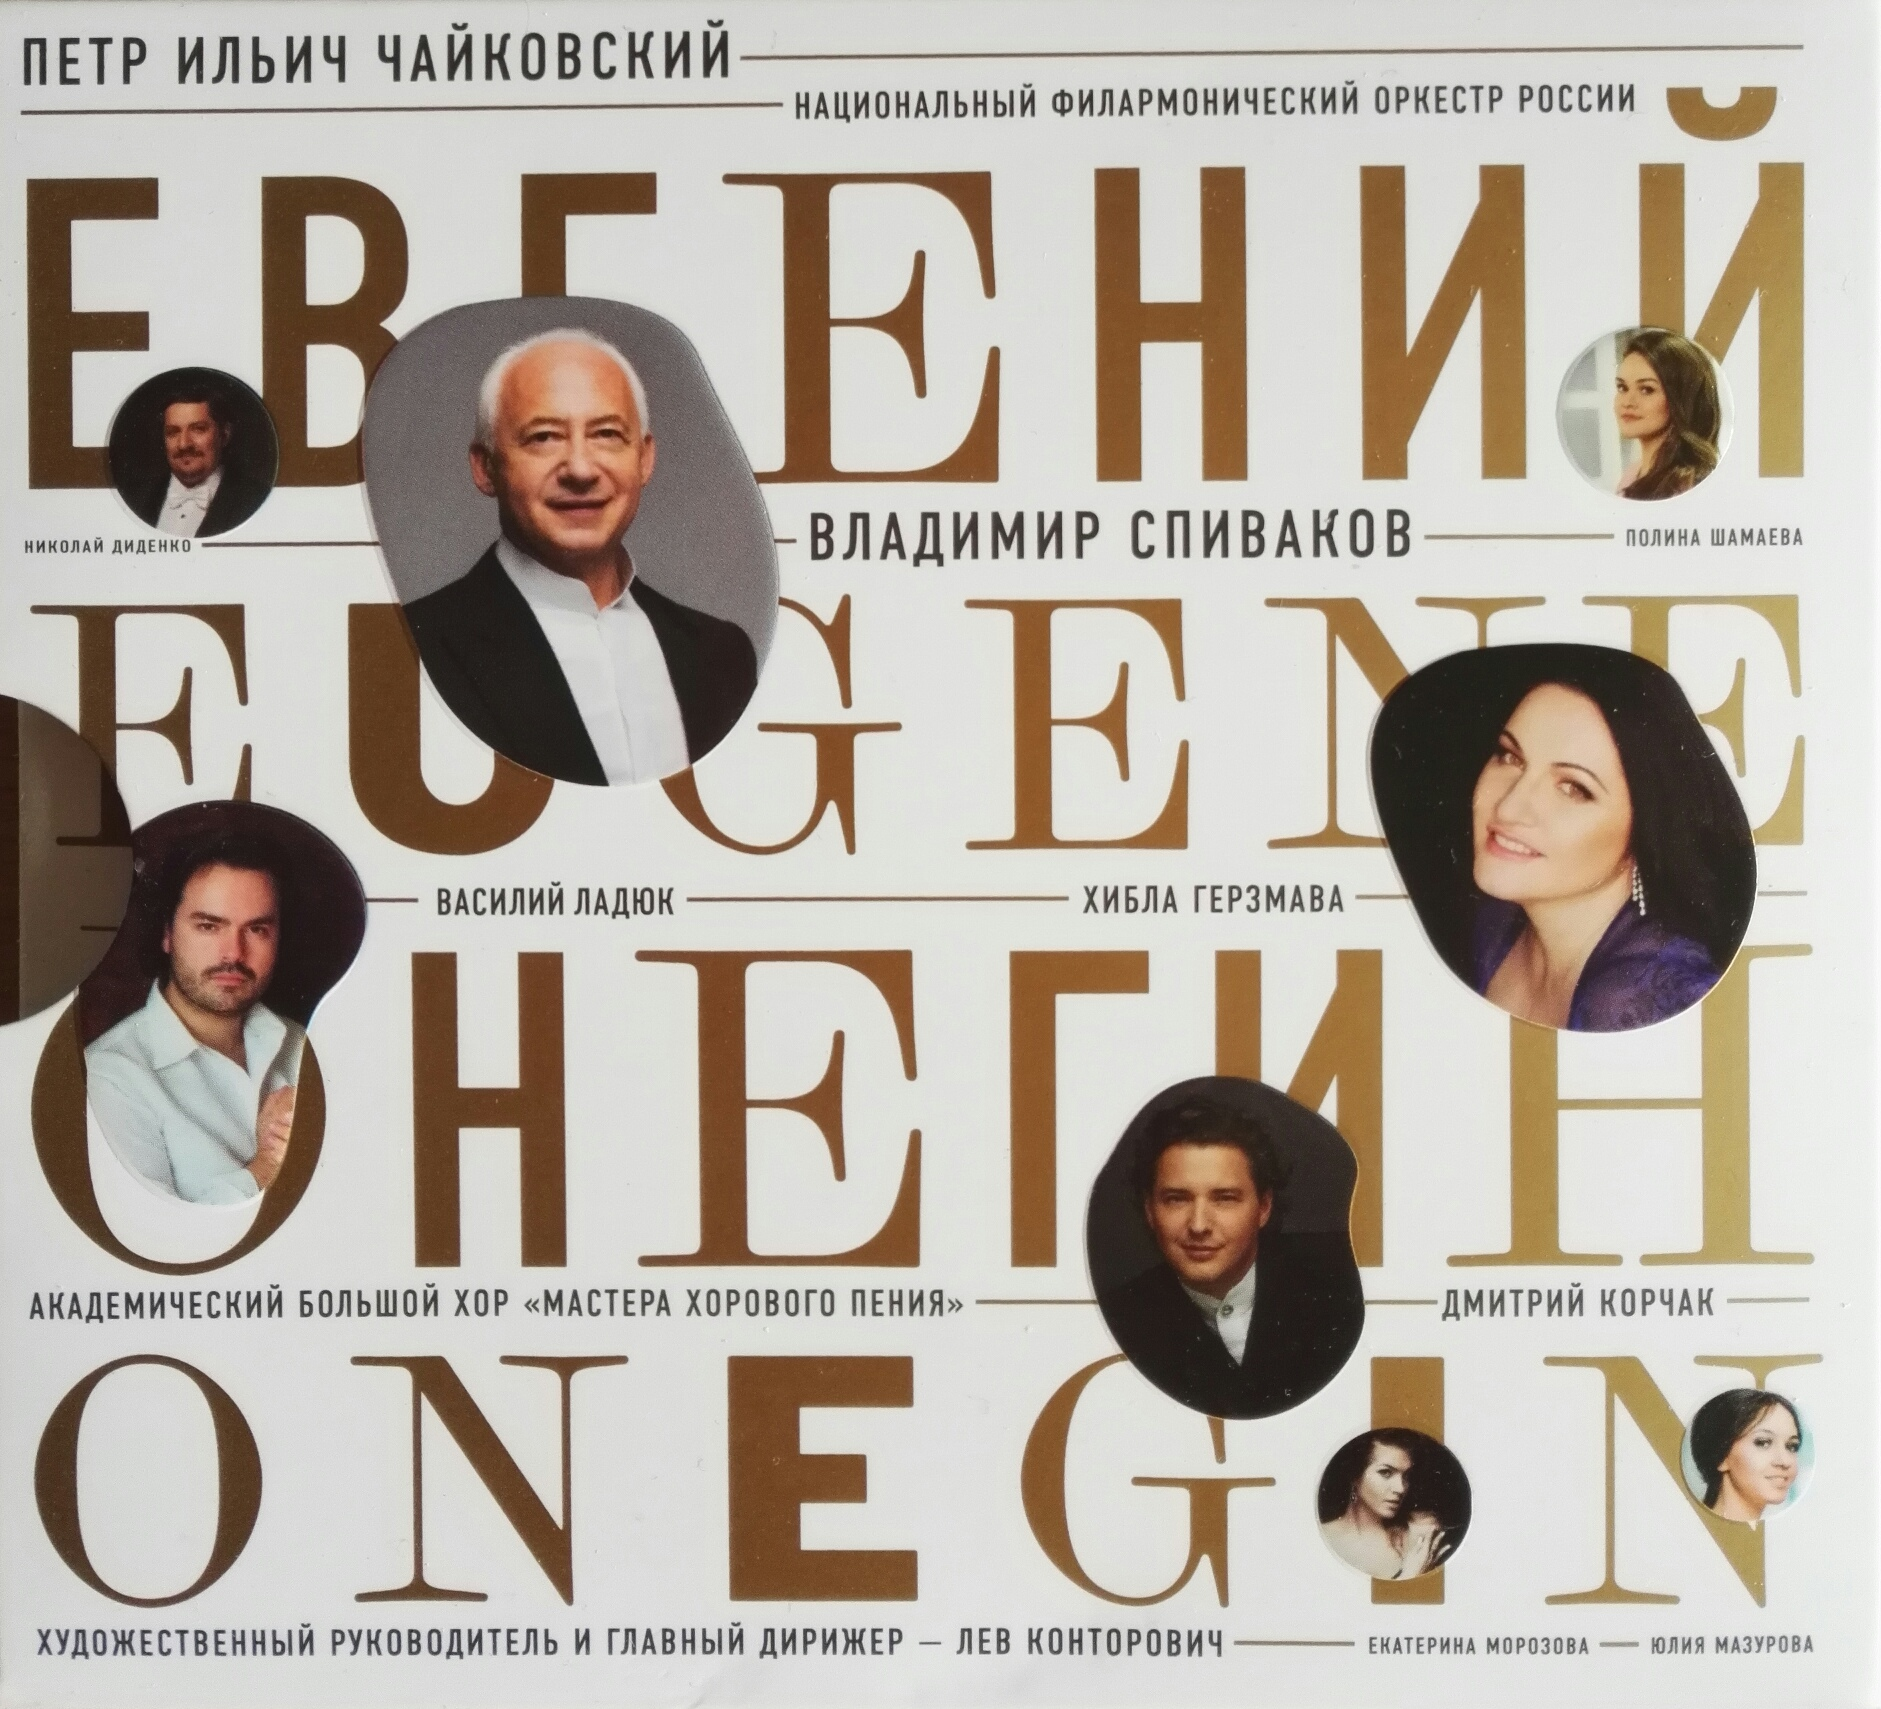 The image of Lensky in the novel Eugene Onegin. Angry fate or fate